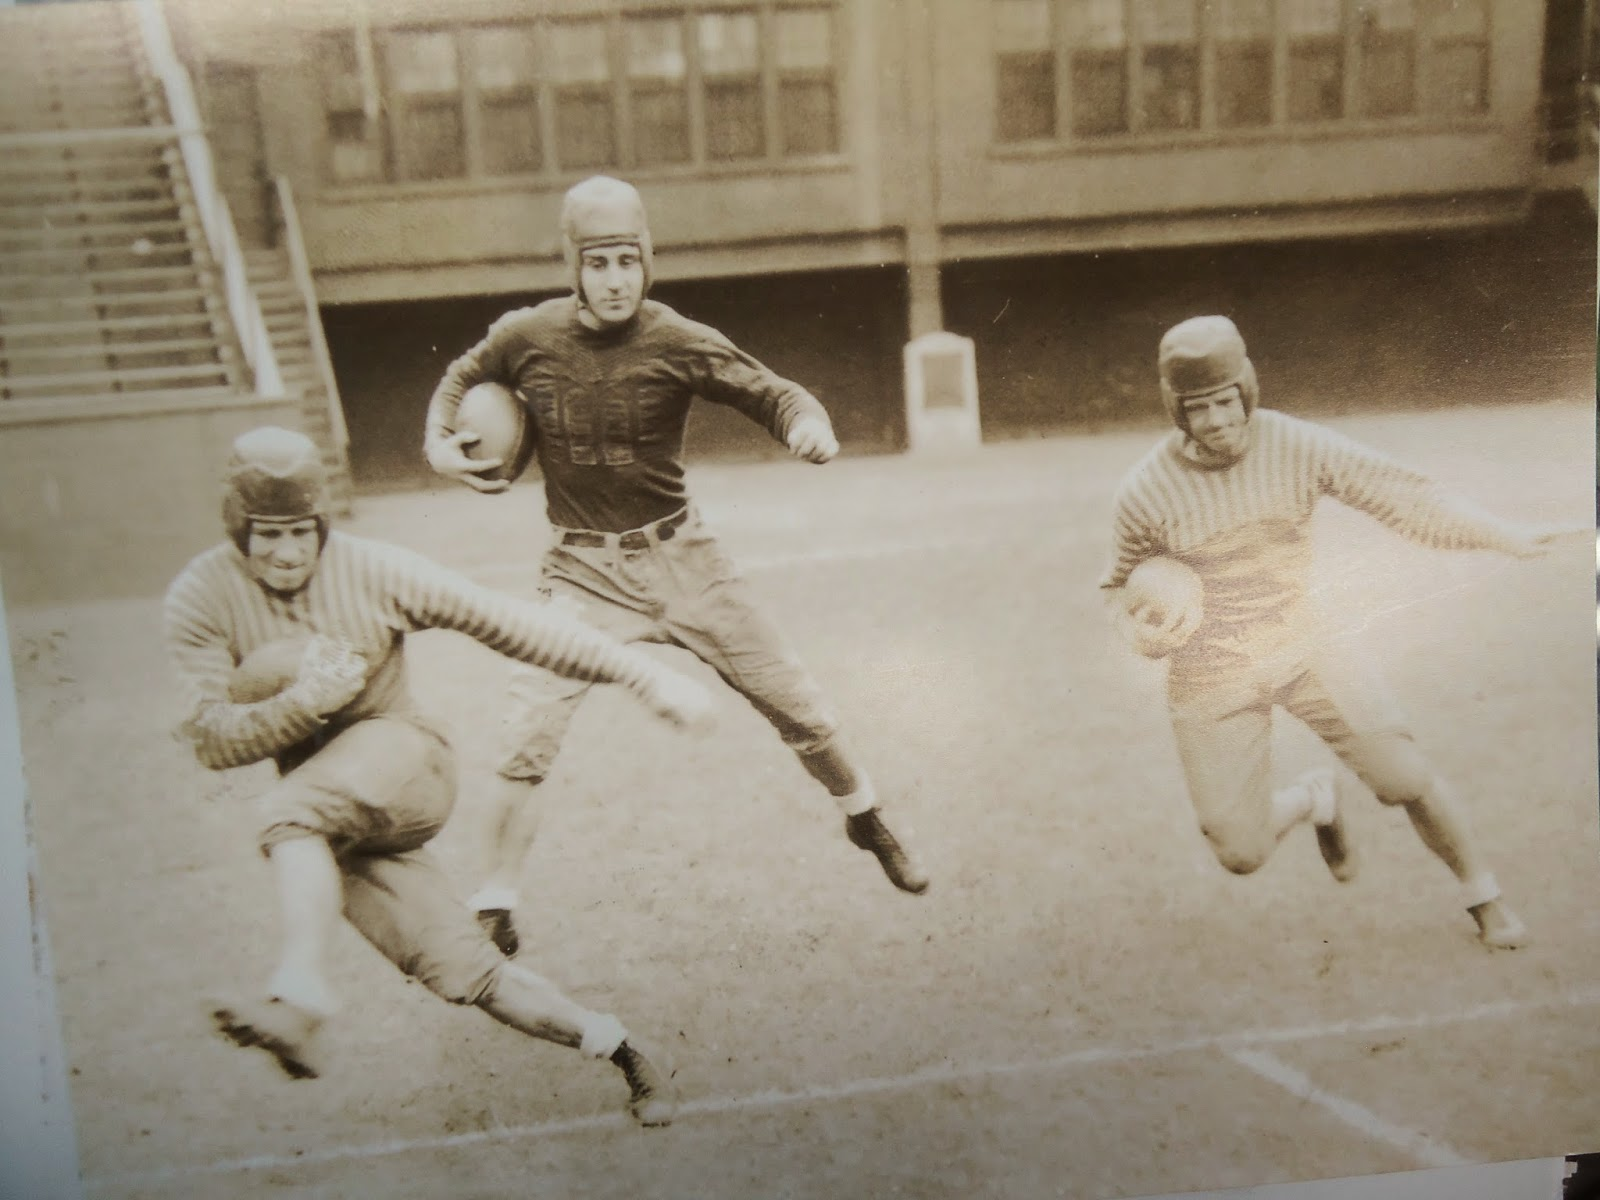 The Milestone Games: The Most Significant NFL Game of each decade- the 1930's